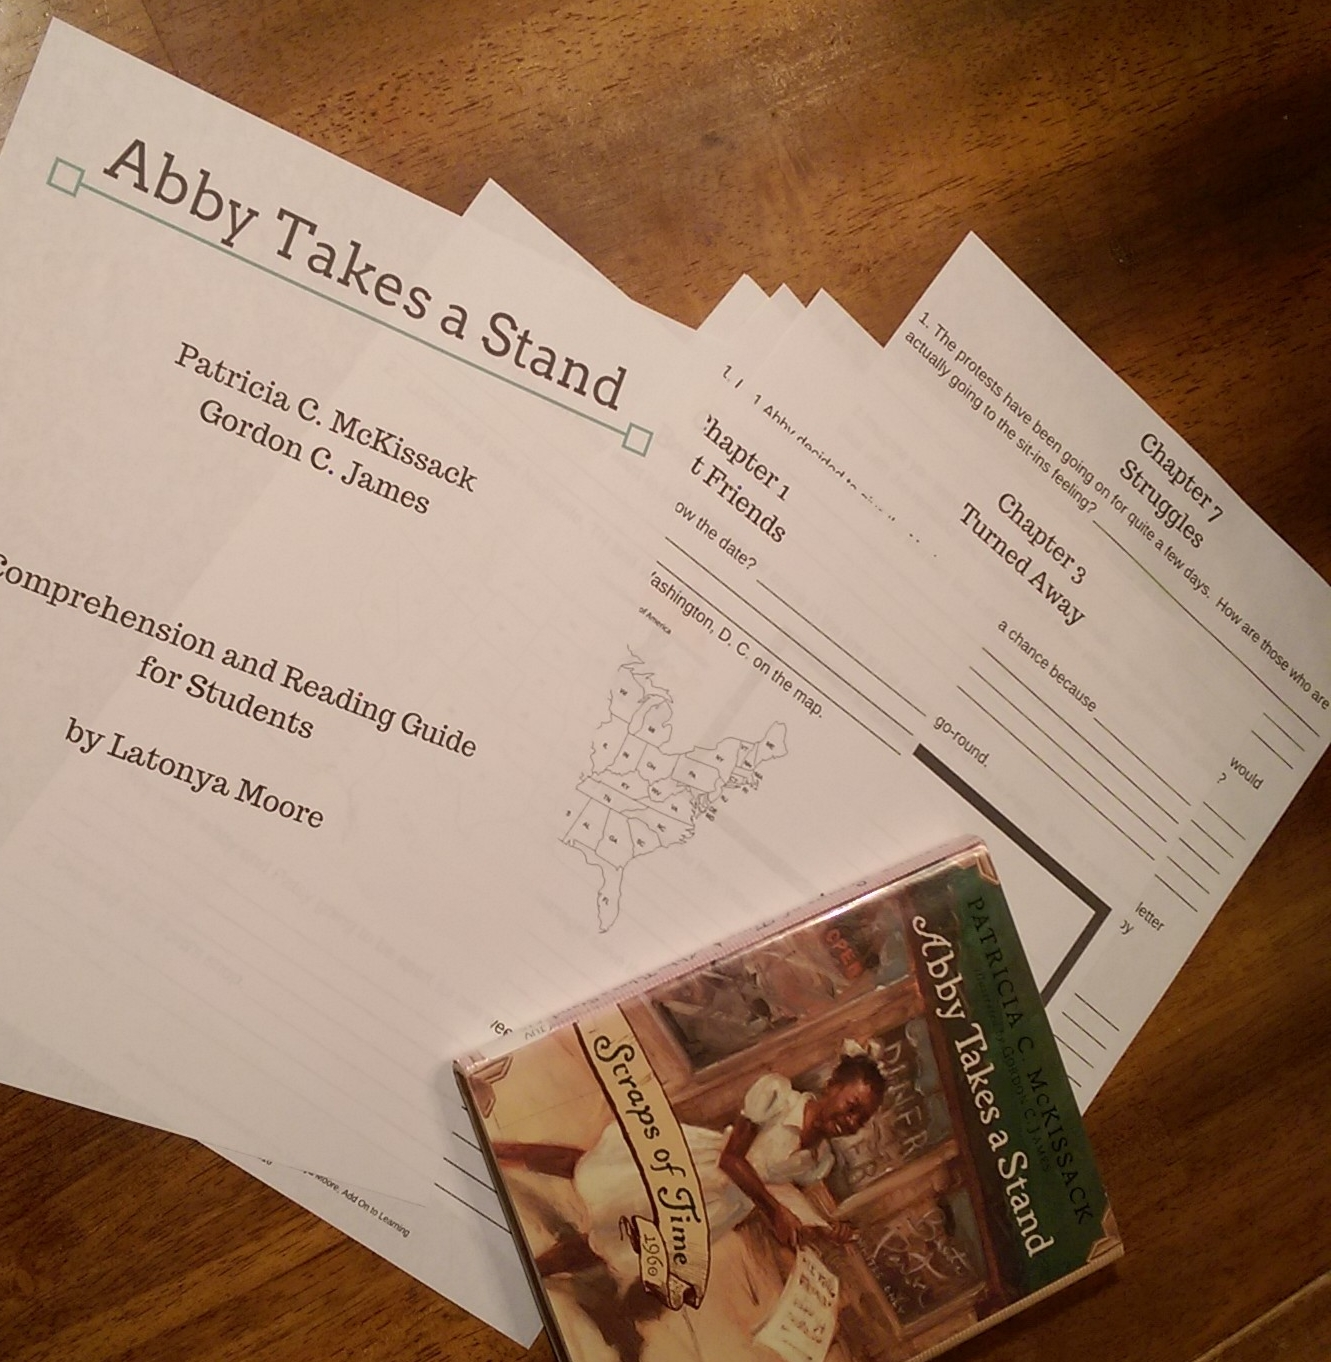 The Abby Takes a Stand study is now available in my Teachers Pay Teachers store.